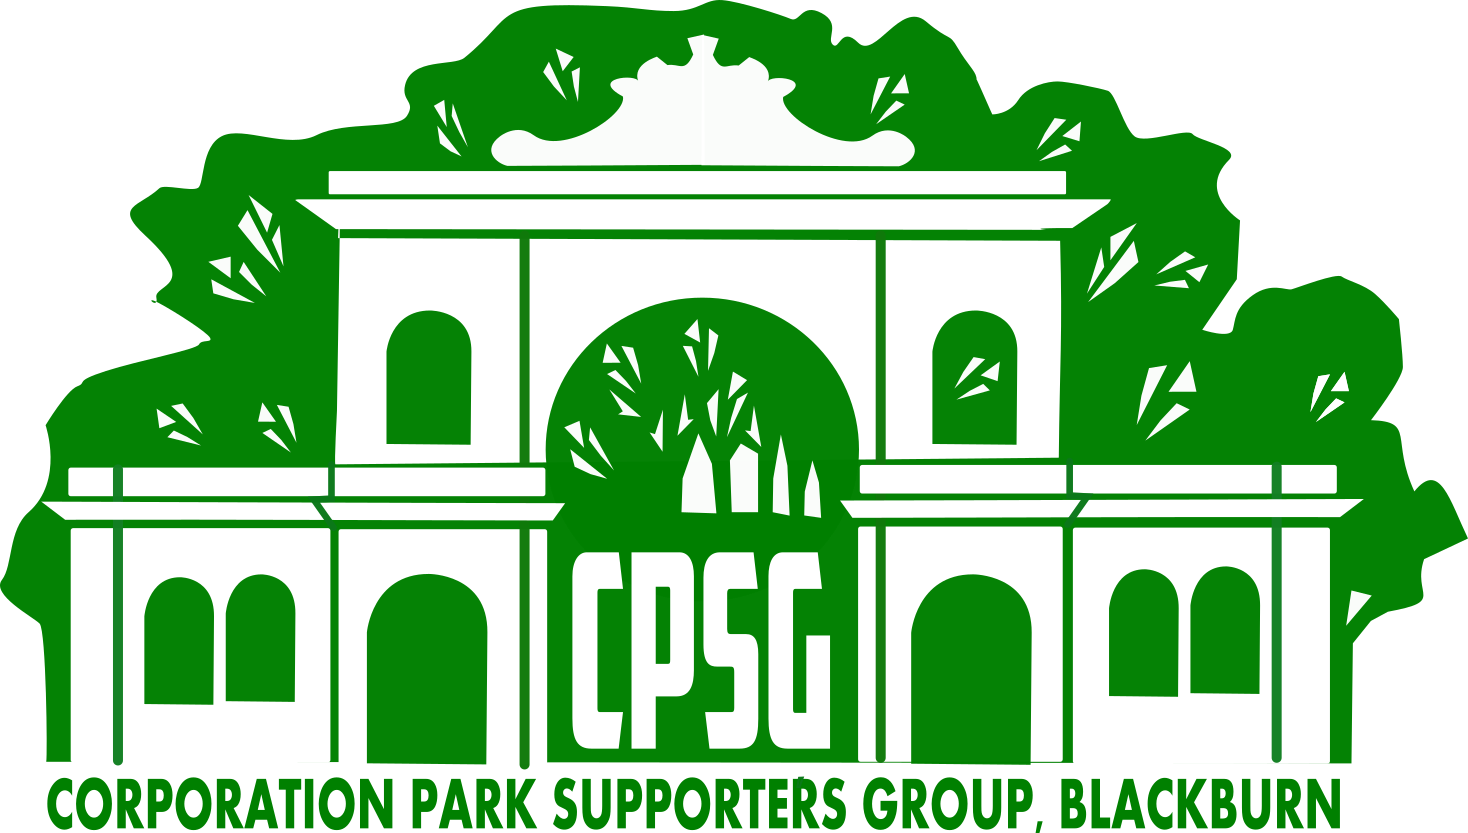 Fond of corporation park. Memories clipart happy place